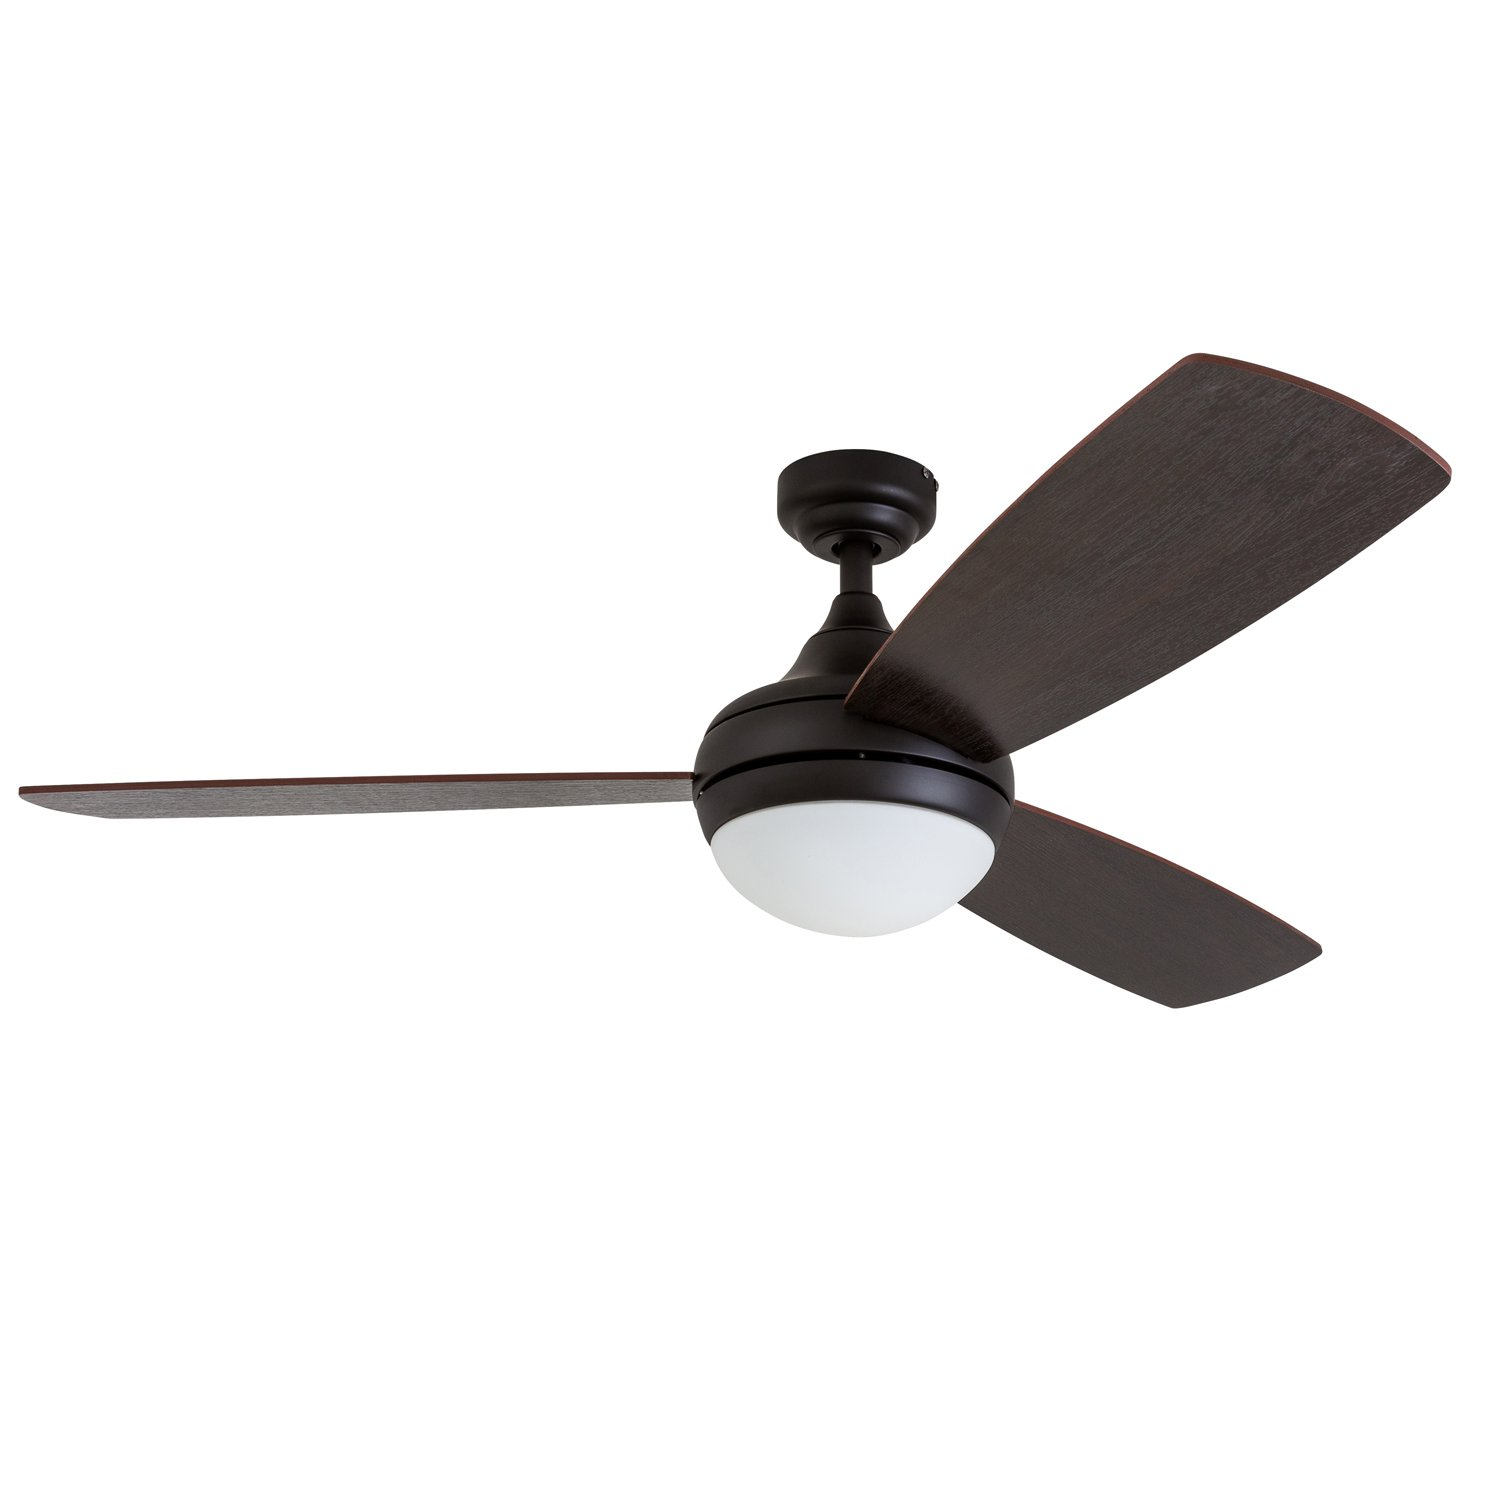 Prominence Home 80036 01 Calico Moderncontemporary Led Ceiling Fan